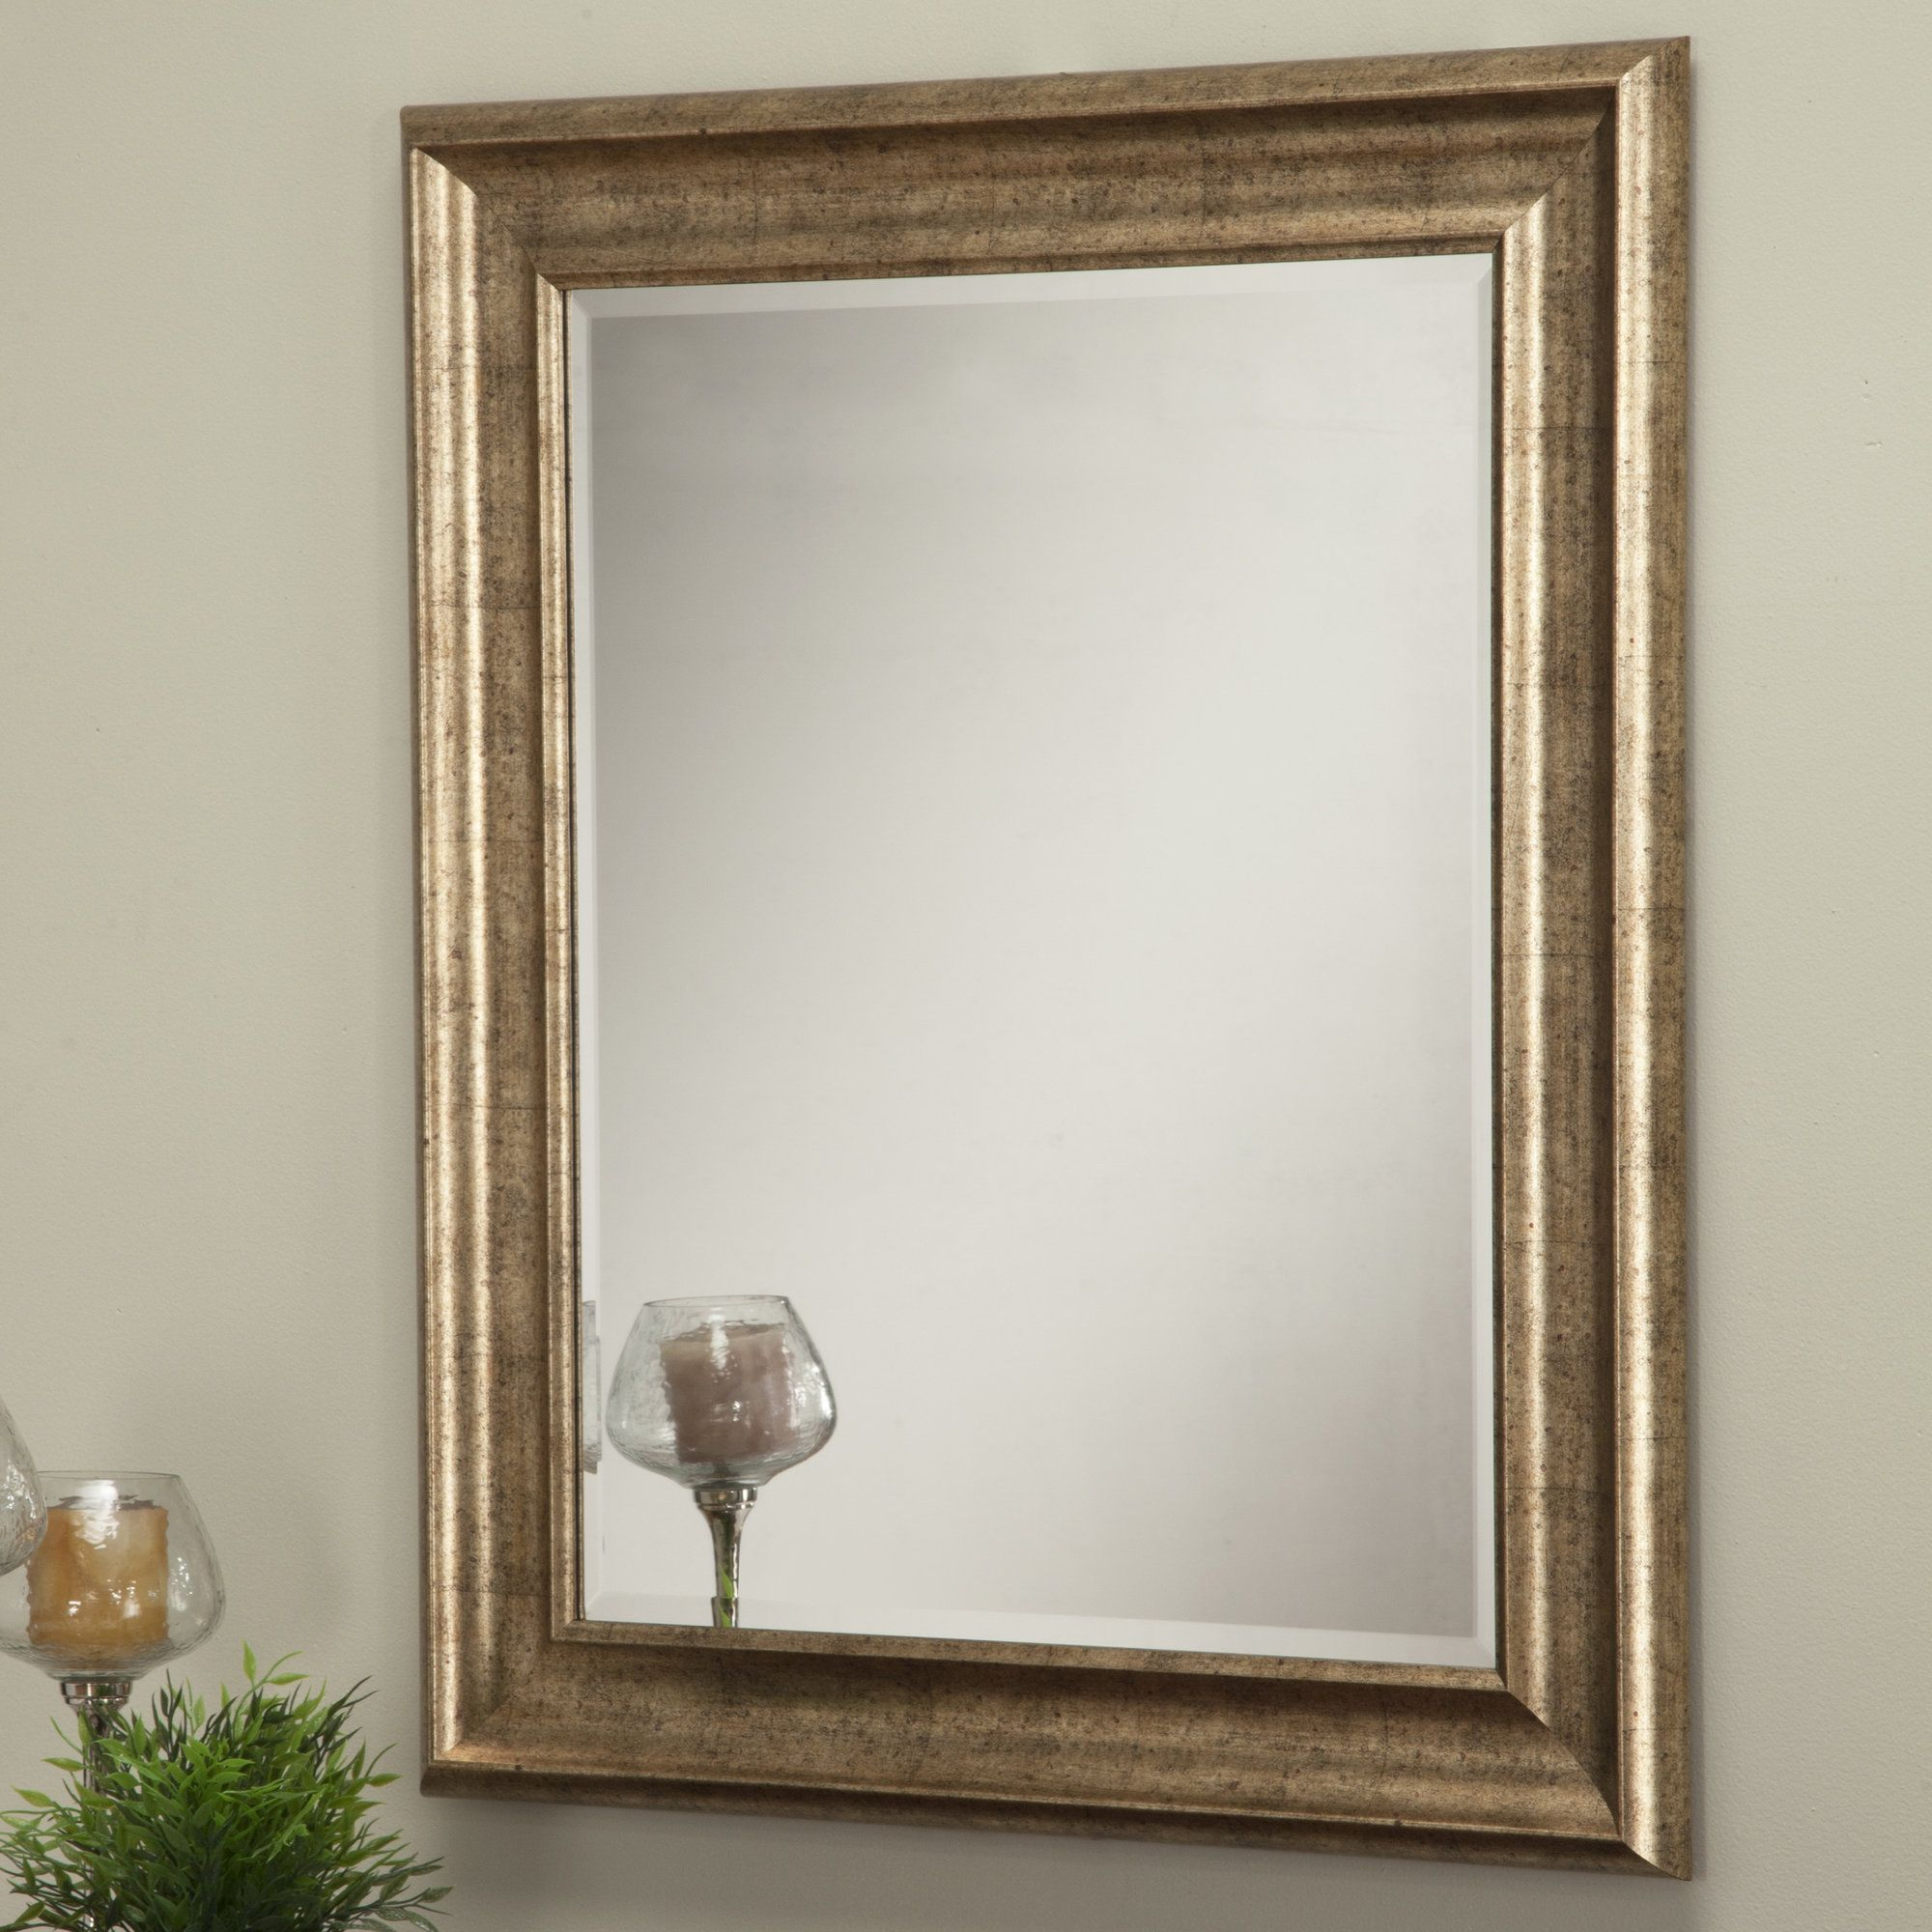 Northcutt Full Length Mirror | Products | Mirror, Floor Throughout Northcutt Accent Mirrors (View 6 of 30)